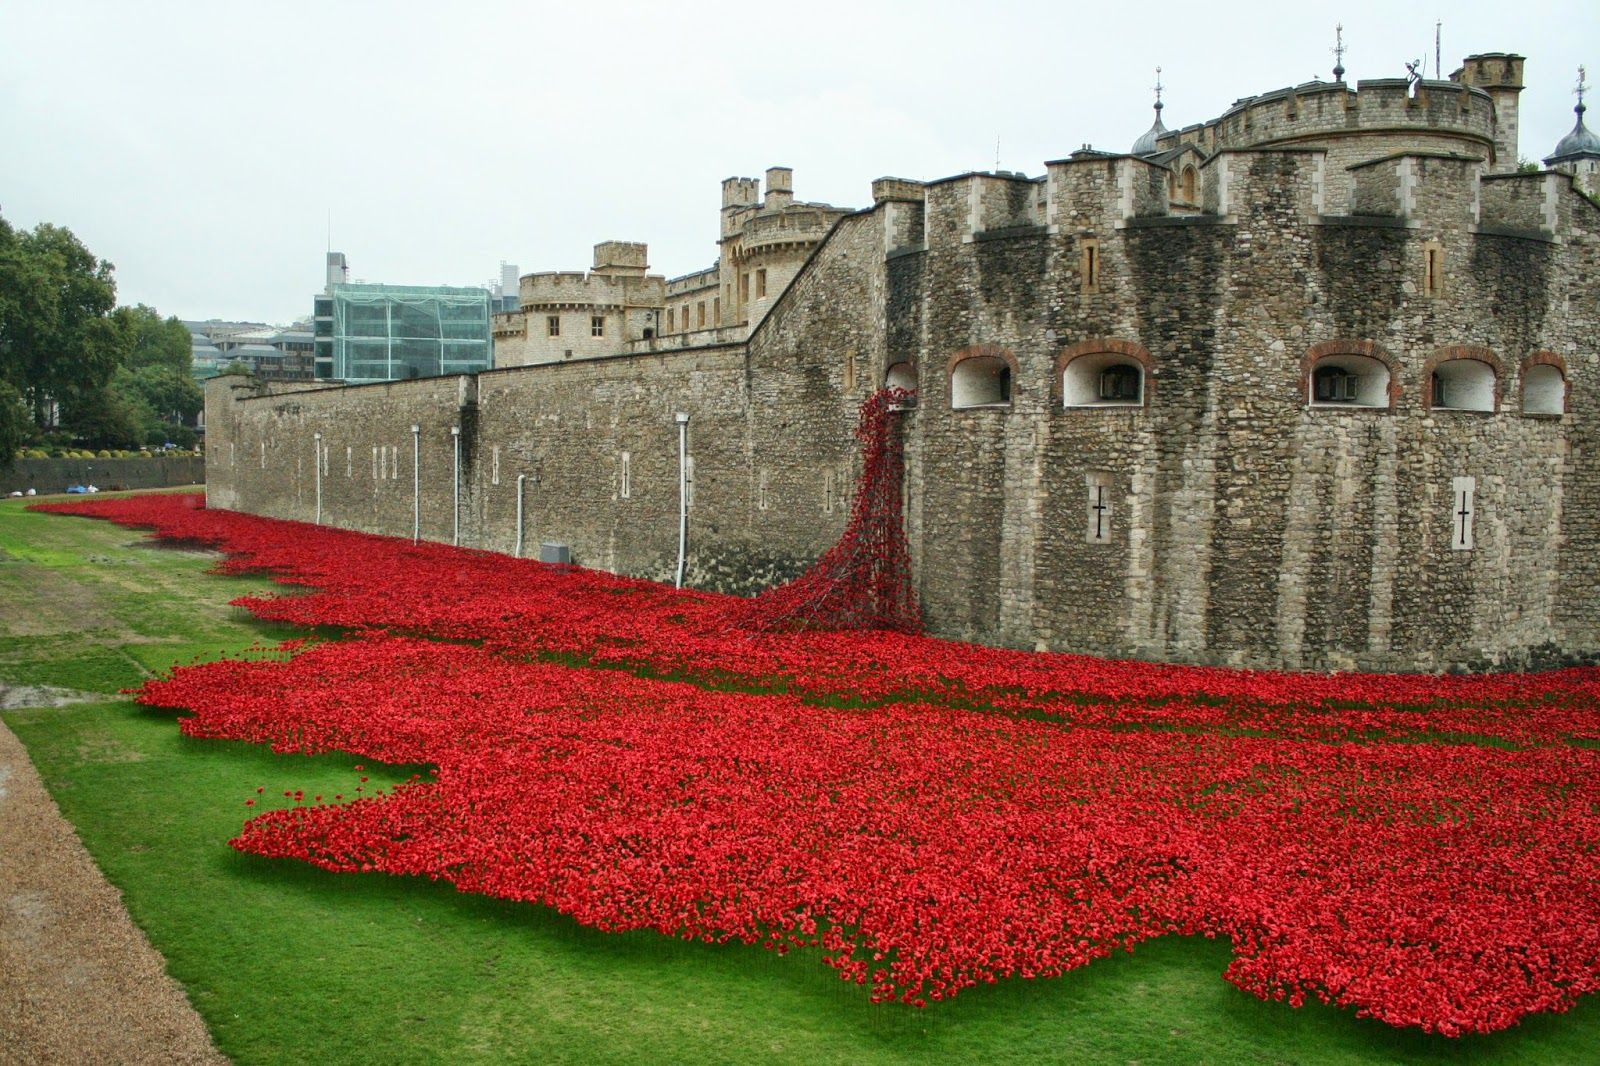 Tower Of London Poppies Poppies Transform Tower Of Londons Moat - Tower of london river of poppies